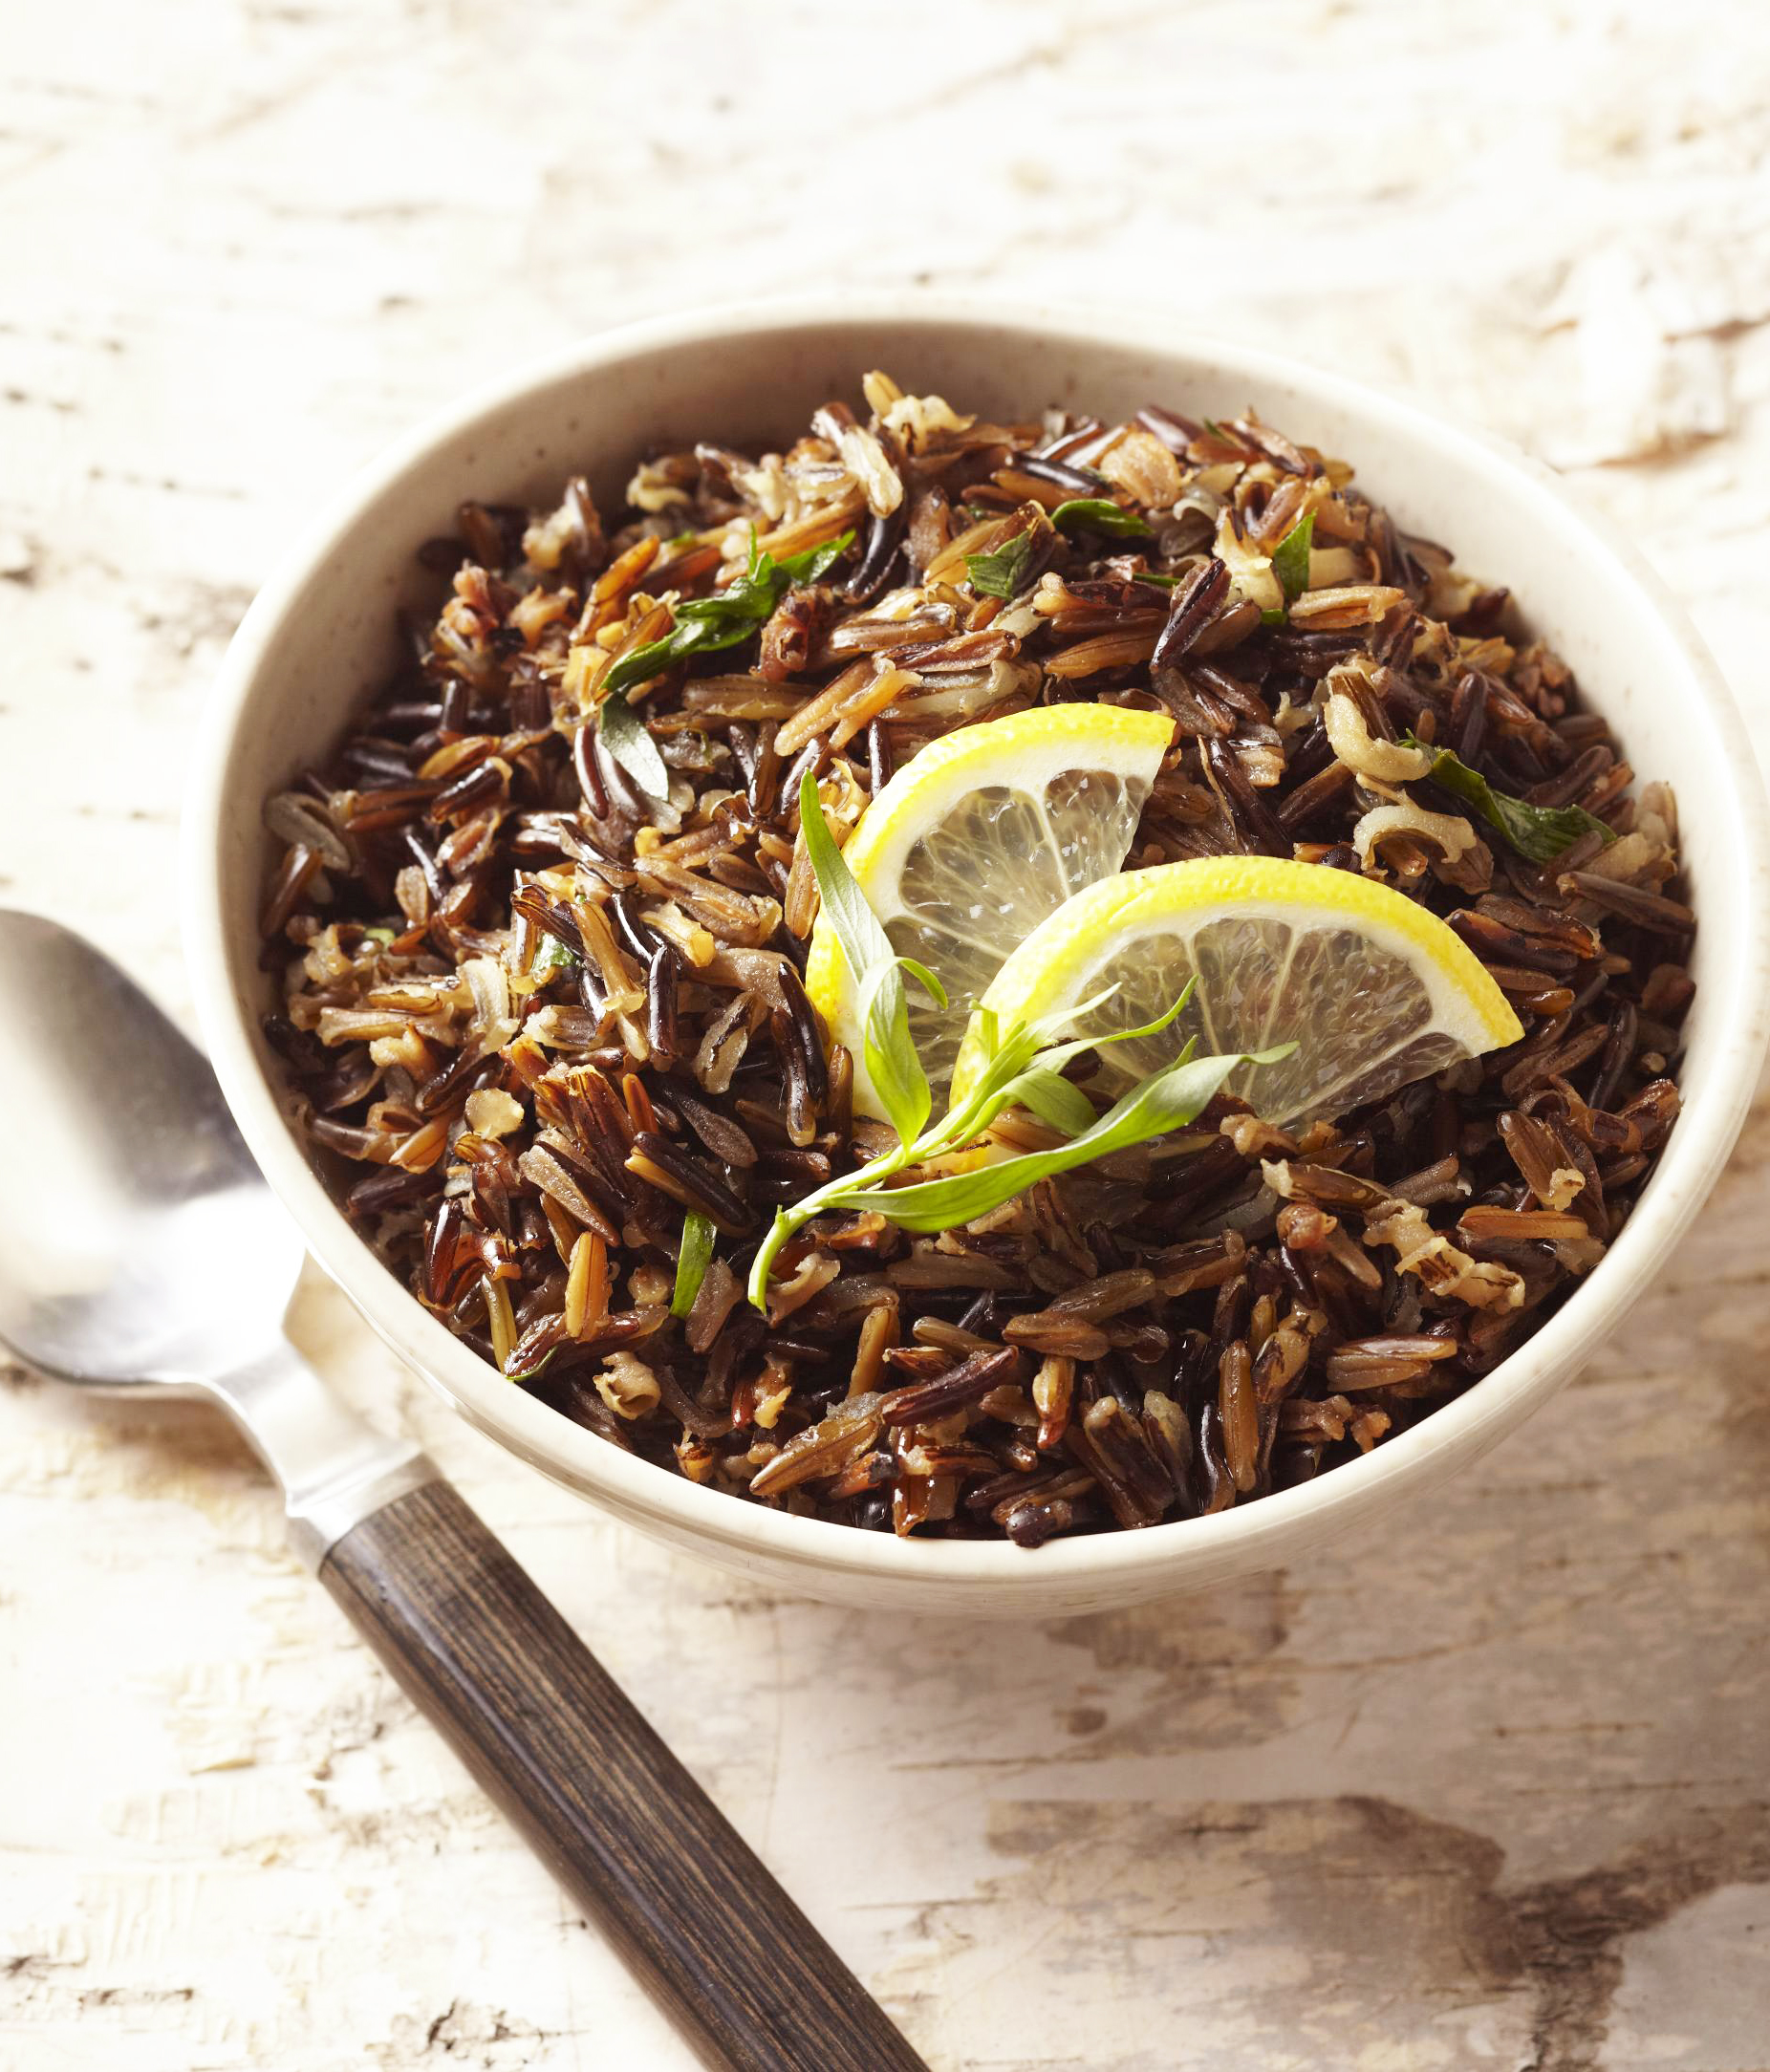 Lemon-Tarragon Wild Rice